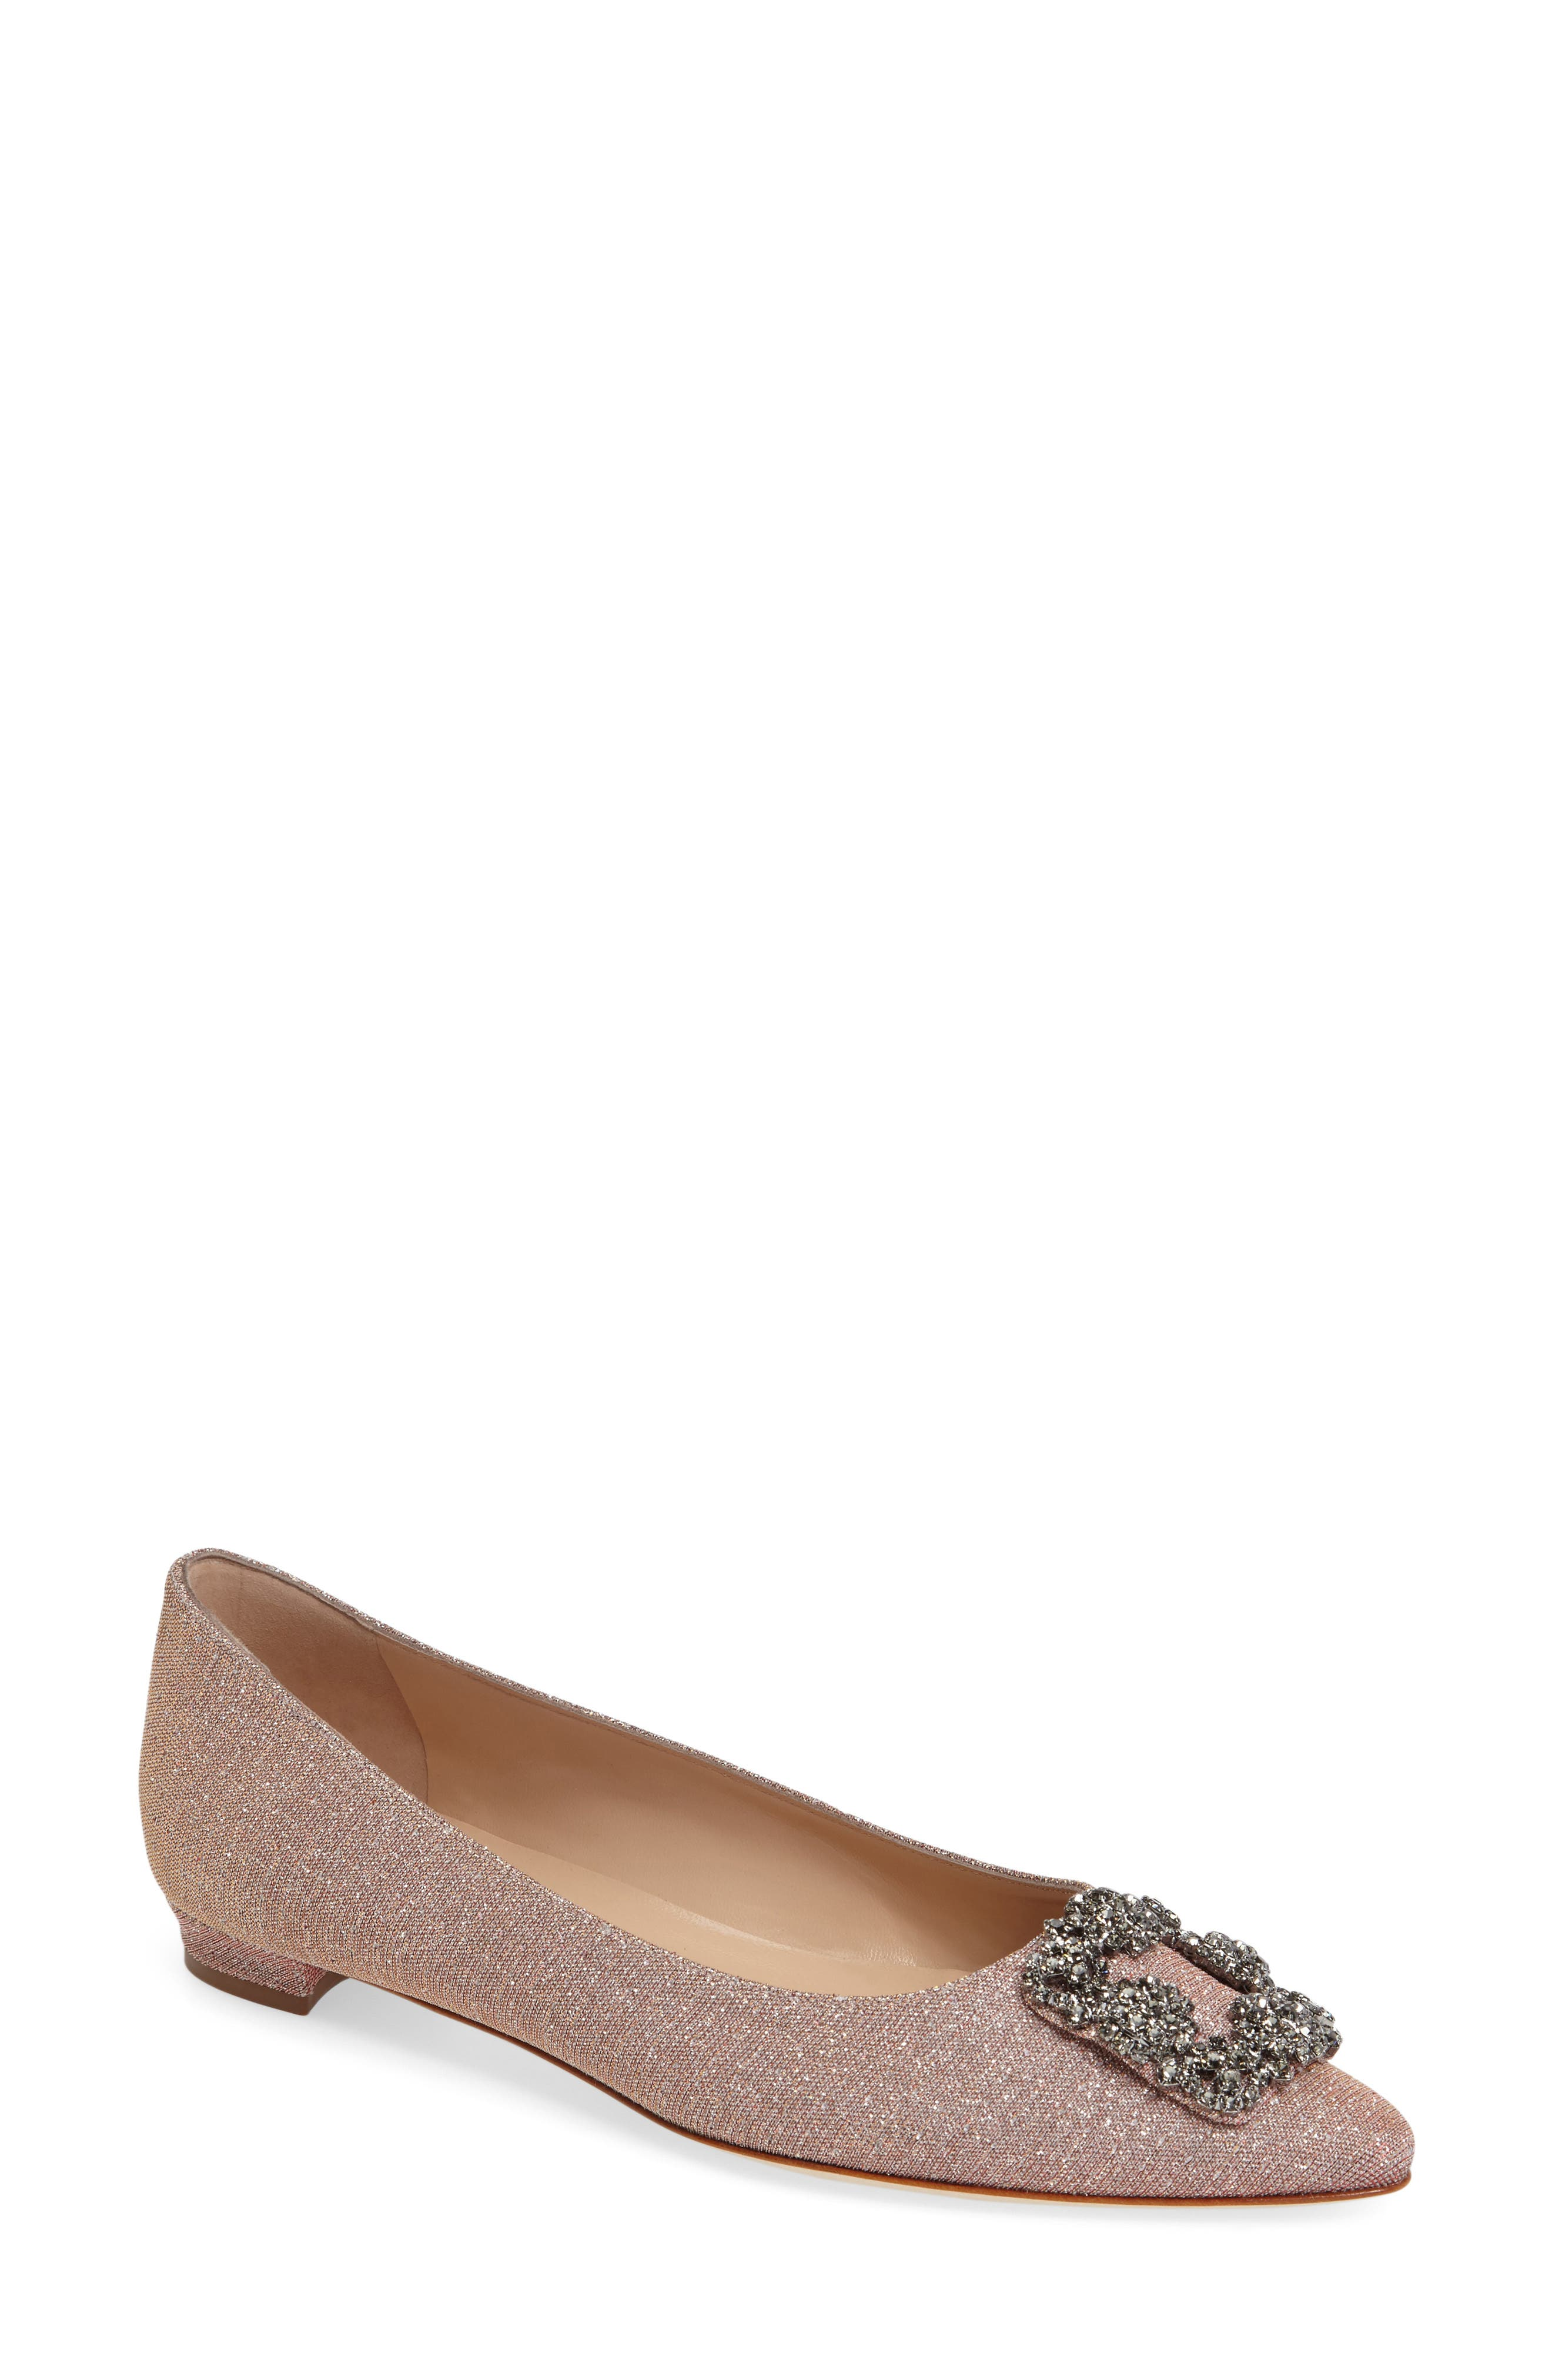 MANOLO BLAHNIK,                             'Hangisi' Jeweled Pointy Toe Flat,                             Main thumbnail 1, color,                             CHAMPAGNE FABRIC